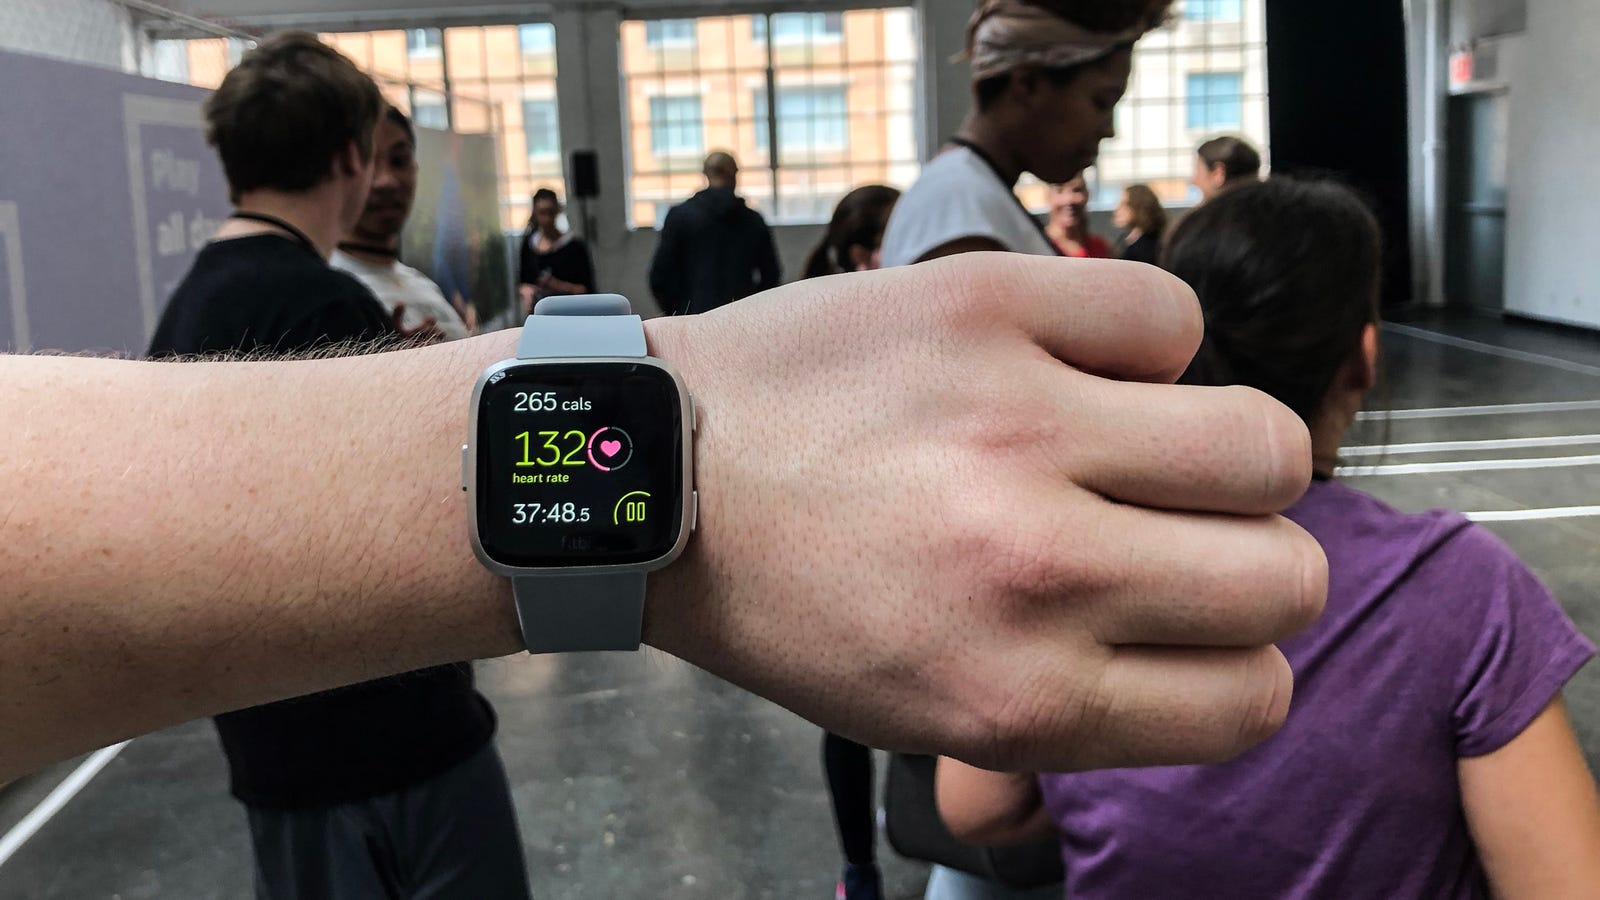 Not too big or bulky. Photo: Harrison Weber (Gizmodo)